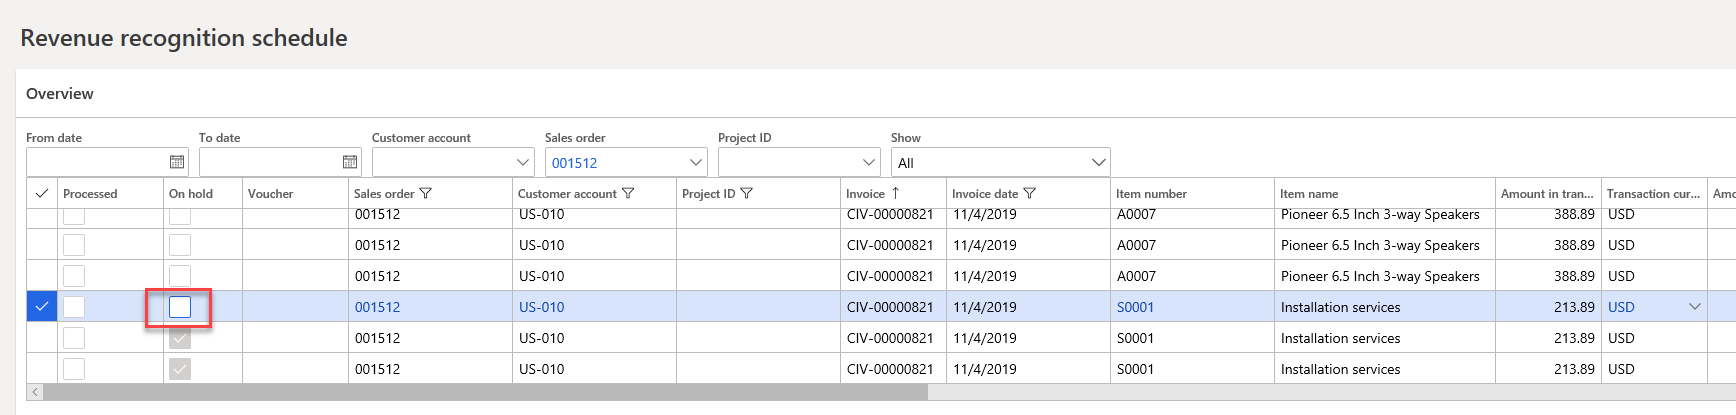 Microsoft-Dynamics-365-revenue-recognition-schedule-first-occurence